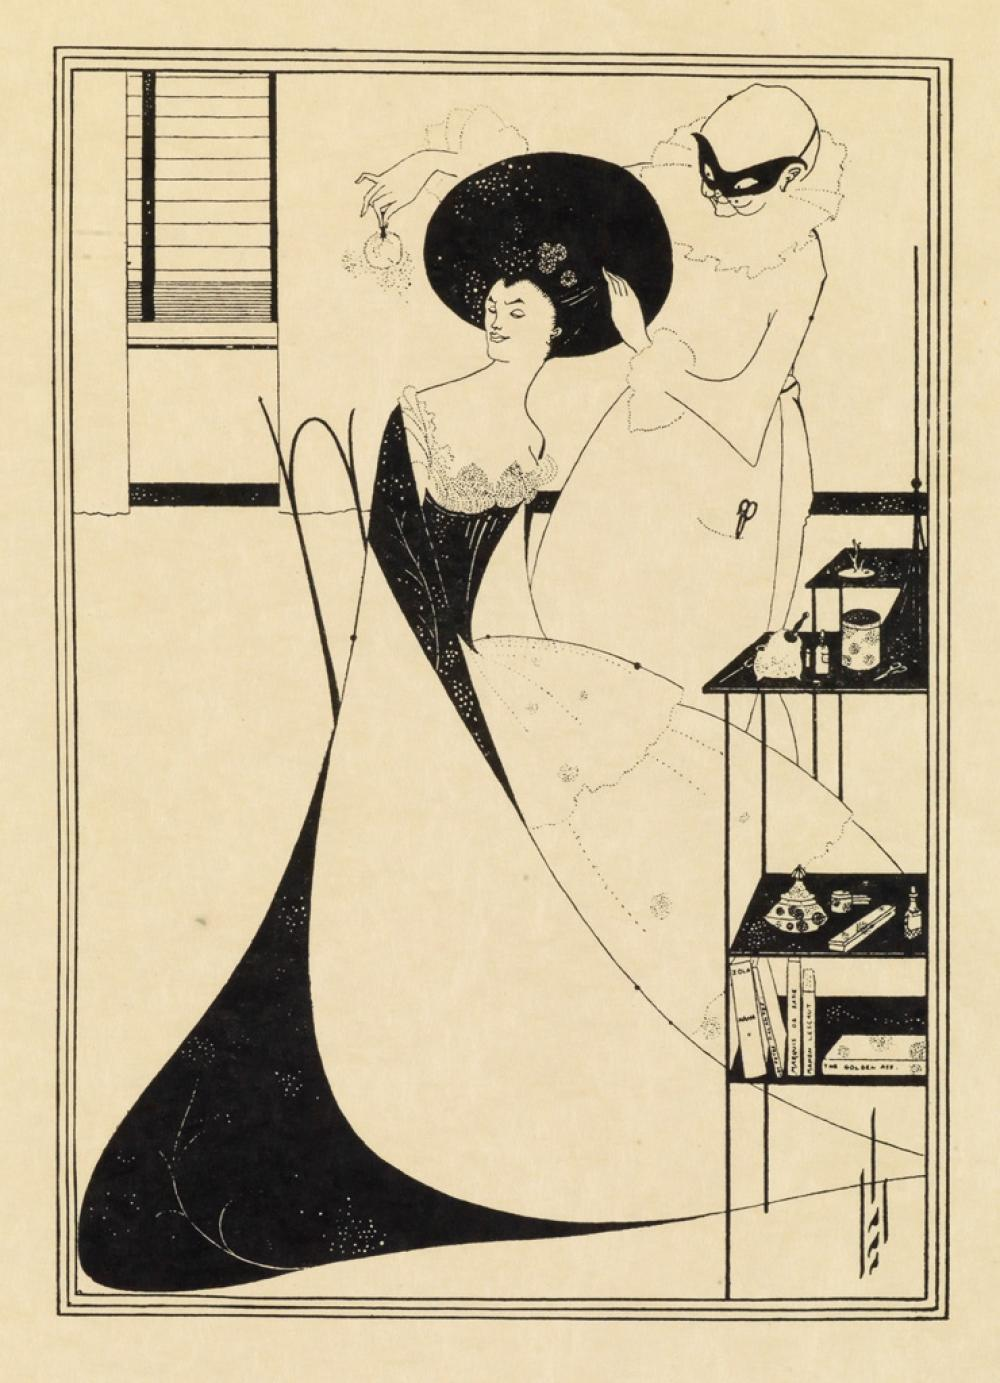 BEARDSLEY, AUBREY. A Portfolio of Aubrey Beardsley''s Drawings Illustrating